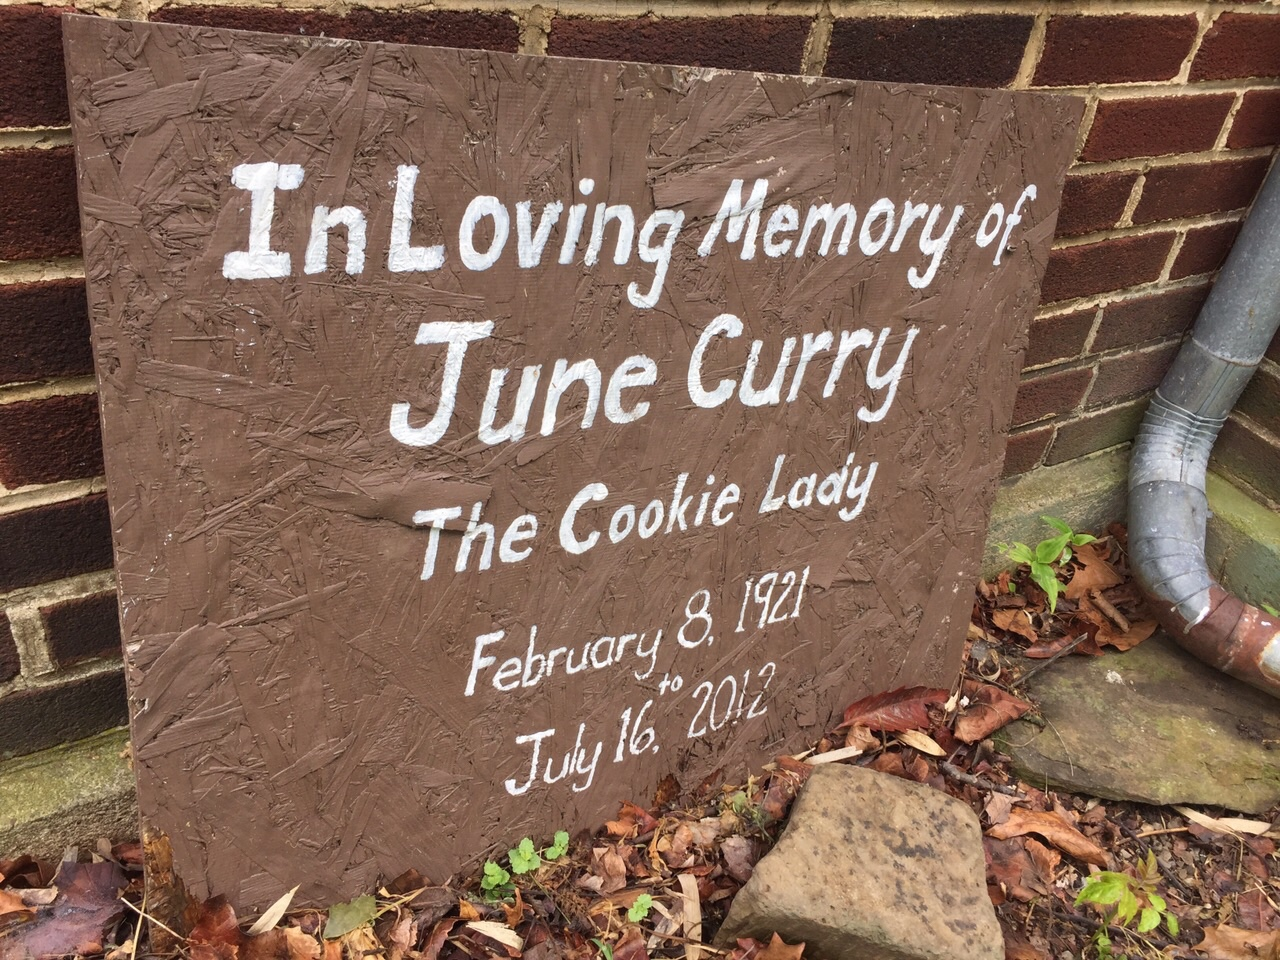 June Curry achieved a measure of fame and immortality, at least amount the biking community as the Cookie Lady and her house became a ritual stop for the TransAmerica route. She passed away and her house still is a stop, but it has fallen into disrepair.